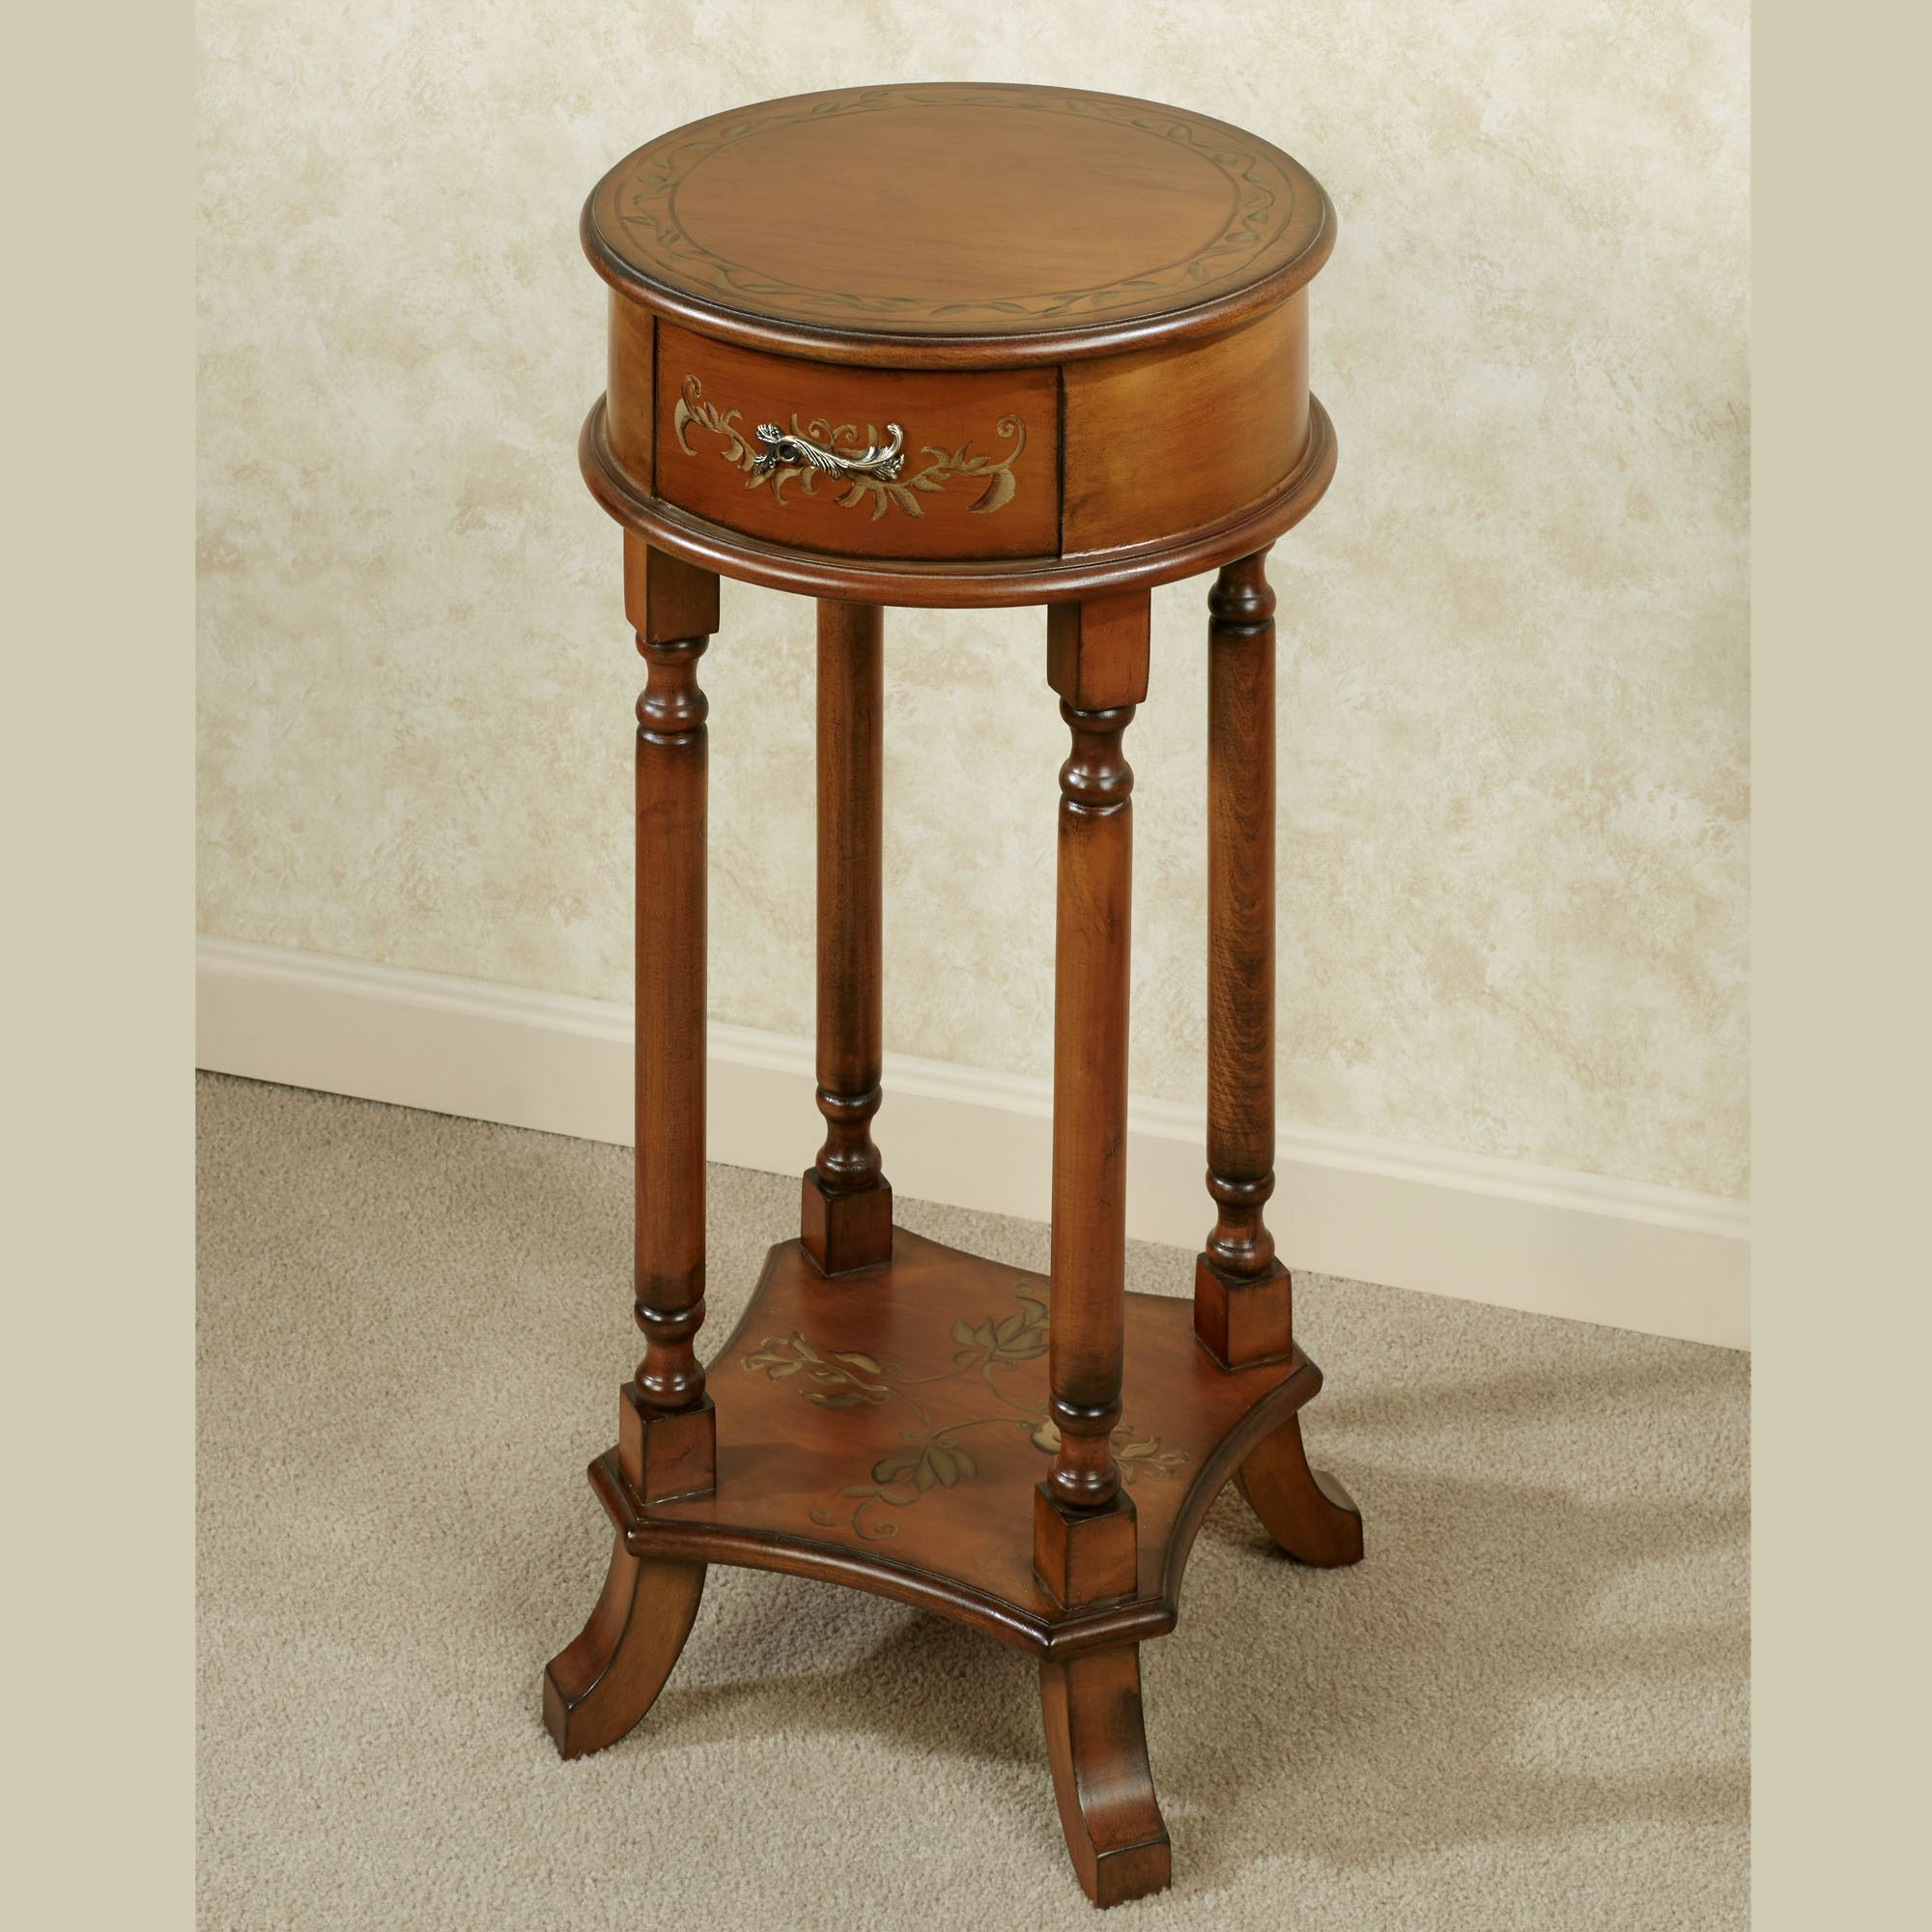 round gold accent table the fantastic cool small cherry wood end trellis tables regal walnut touch zoom complete living room furniture packages ethan allen british classics